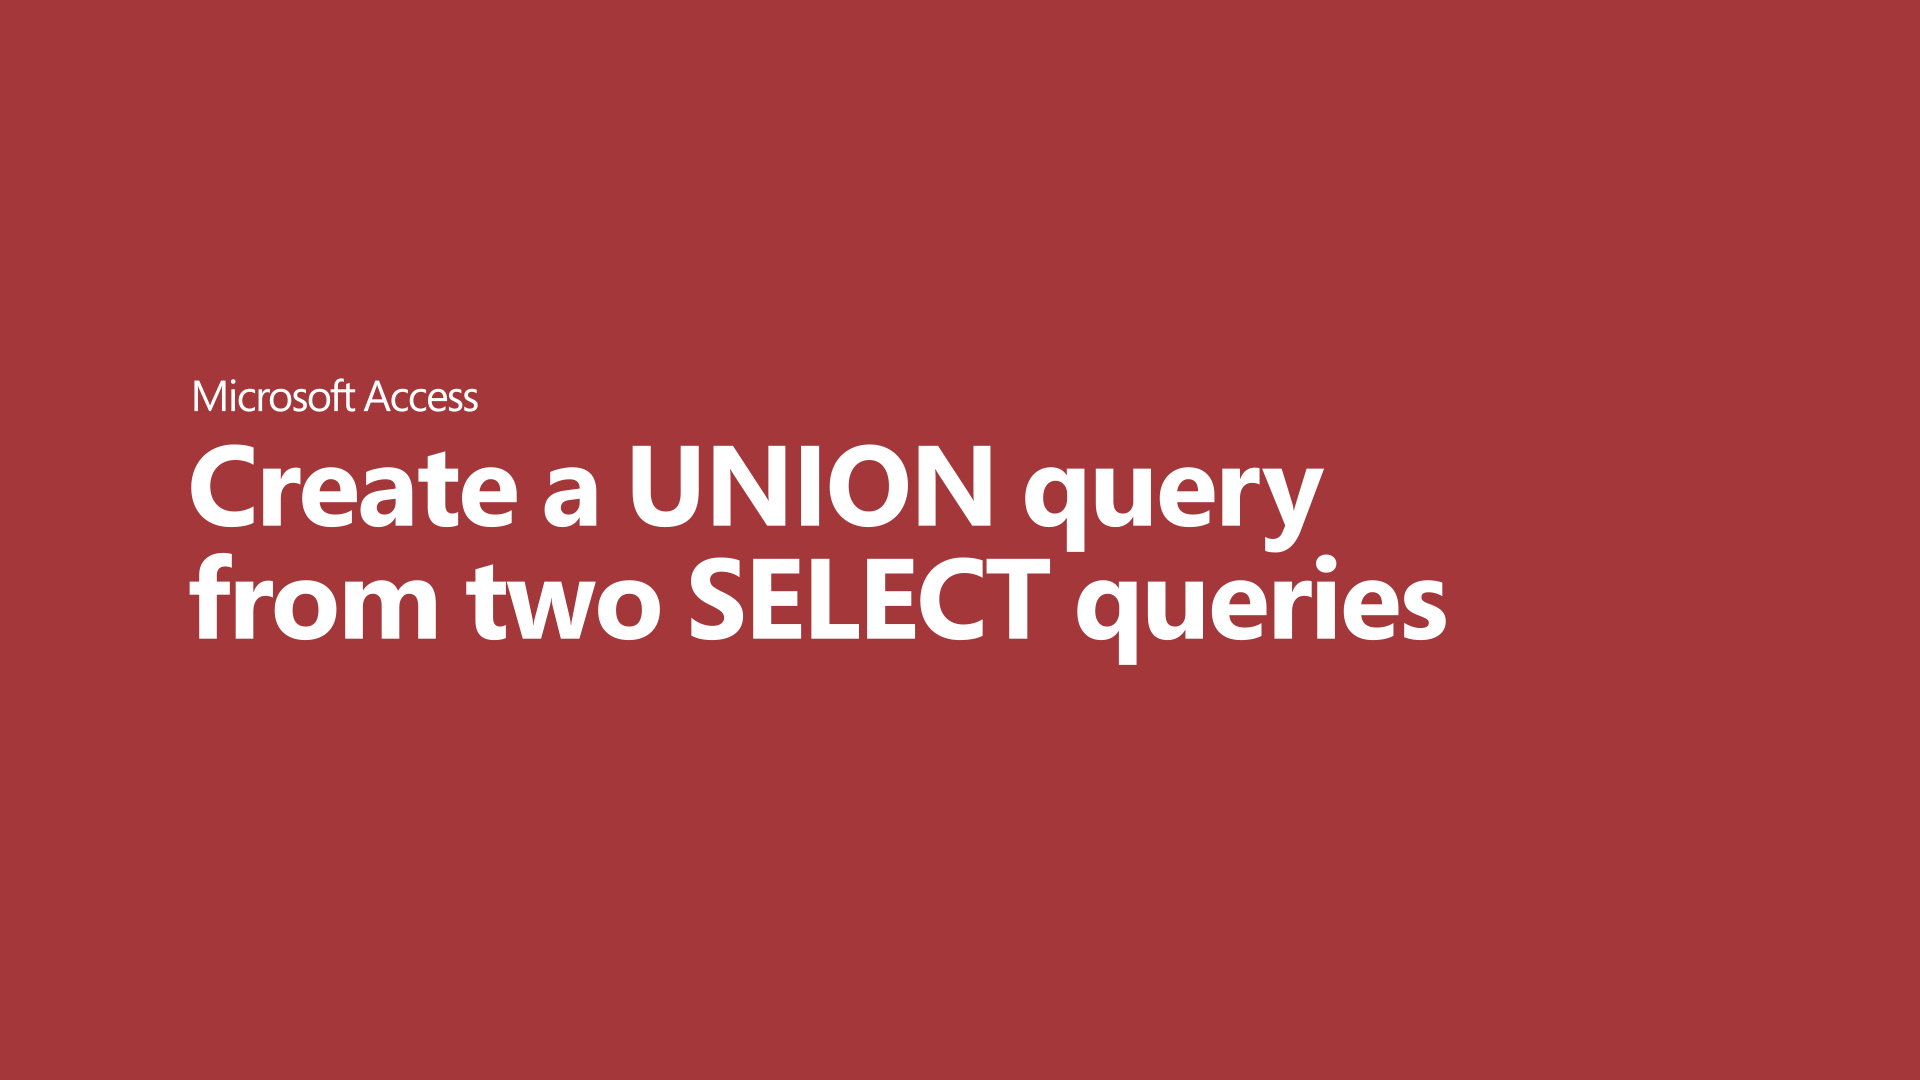 Format a UNION query